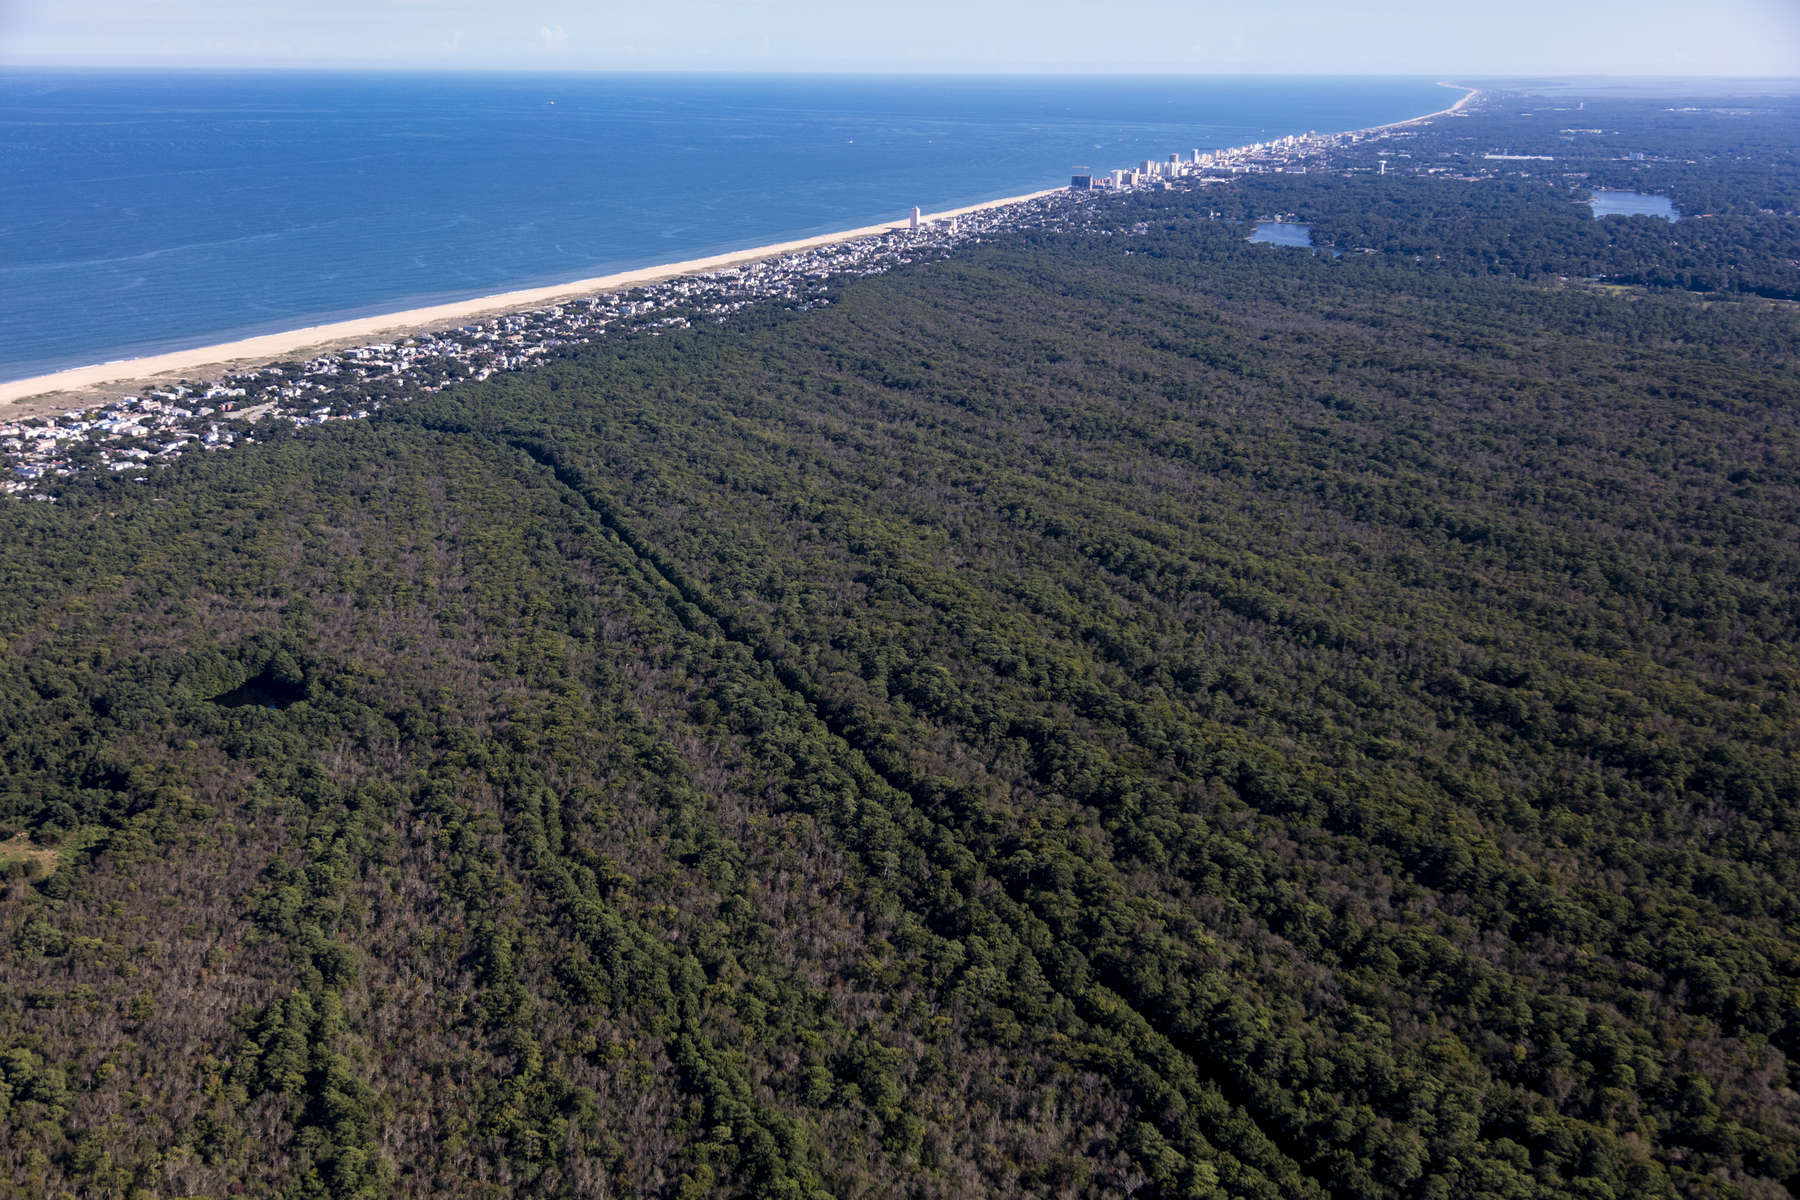 Forested Beach Ridges, Virginia Beach, Virginia 2018 (180905-0415)